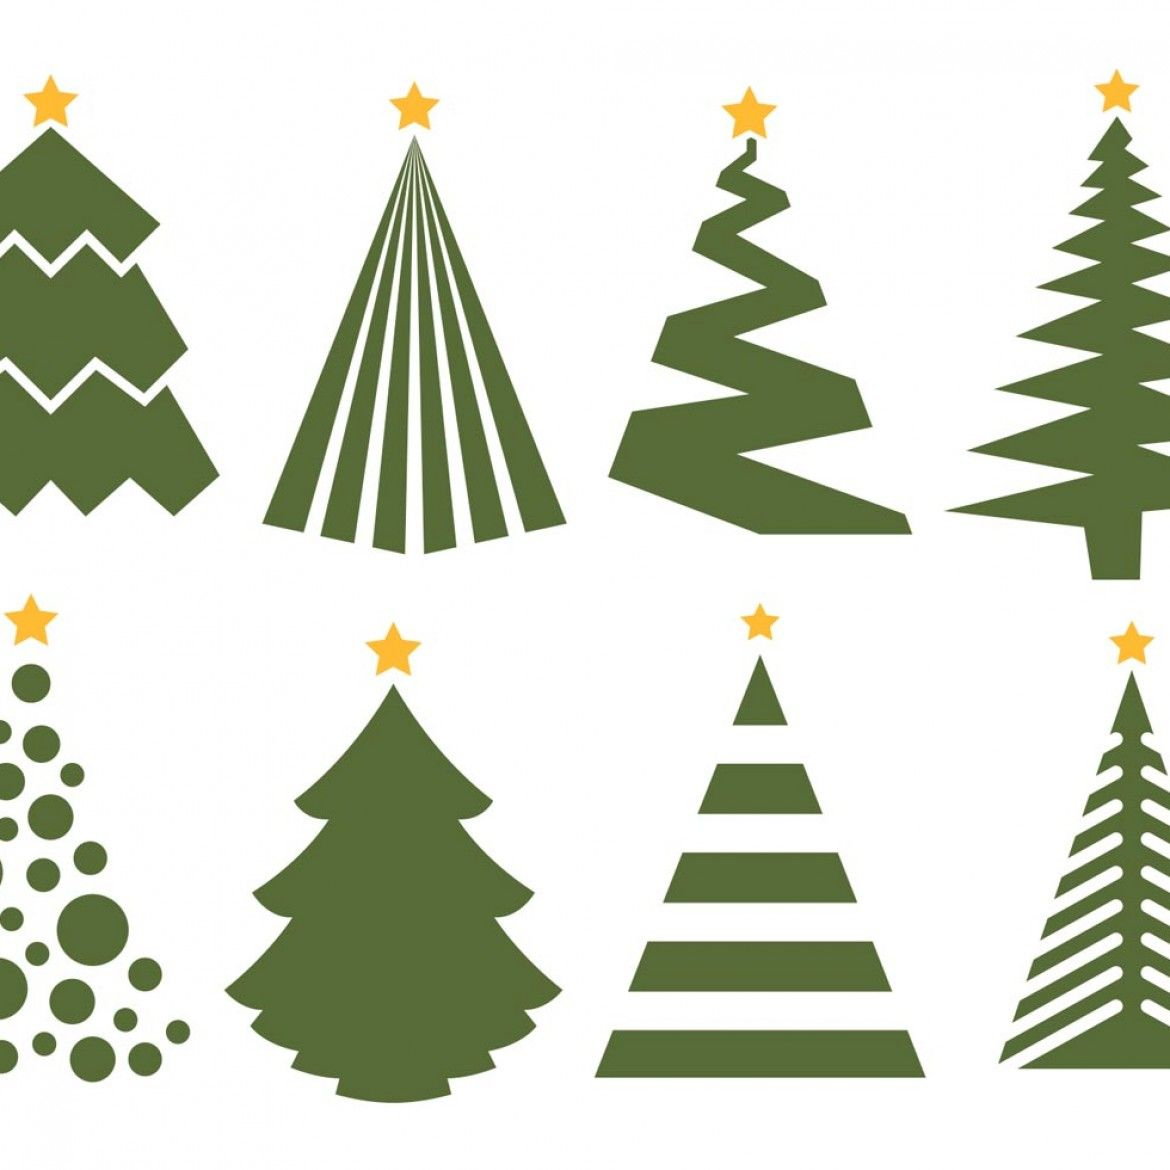 Christmas Tree Vector.Christmas Tree Vector Designs Free Vector Christmas Tree